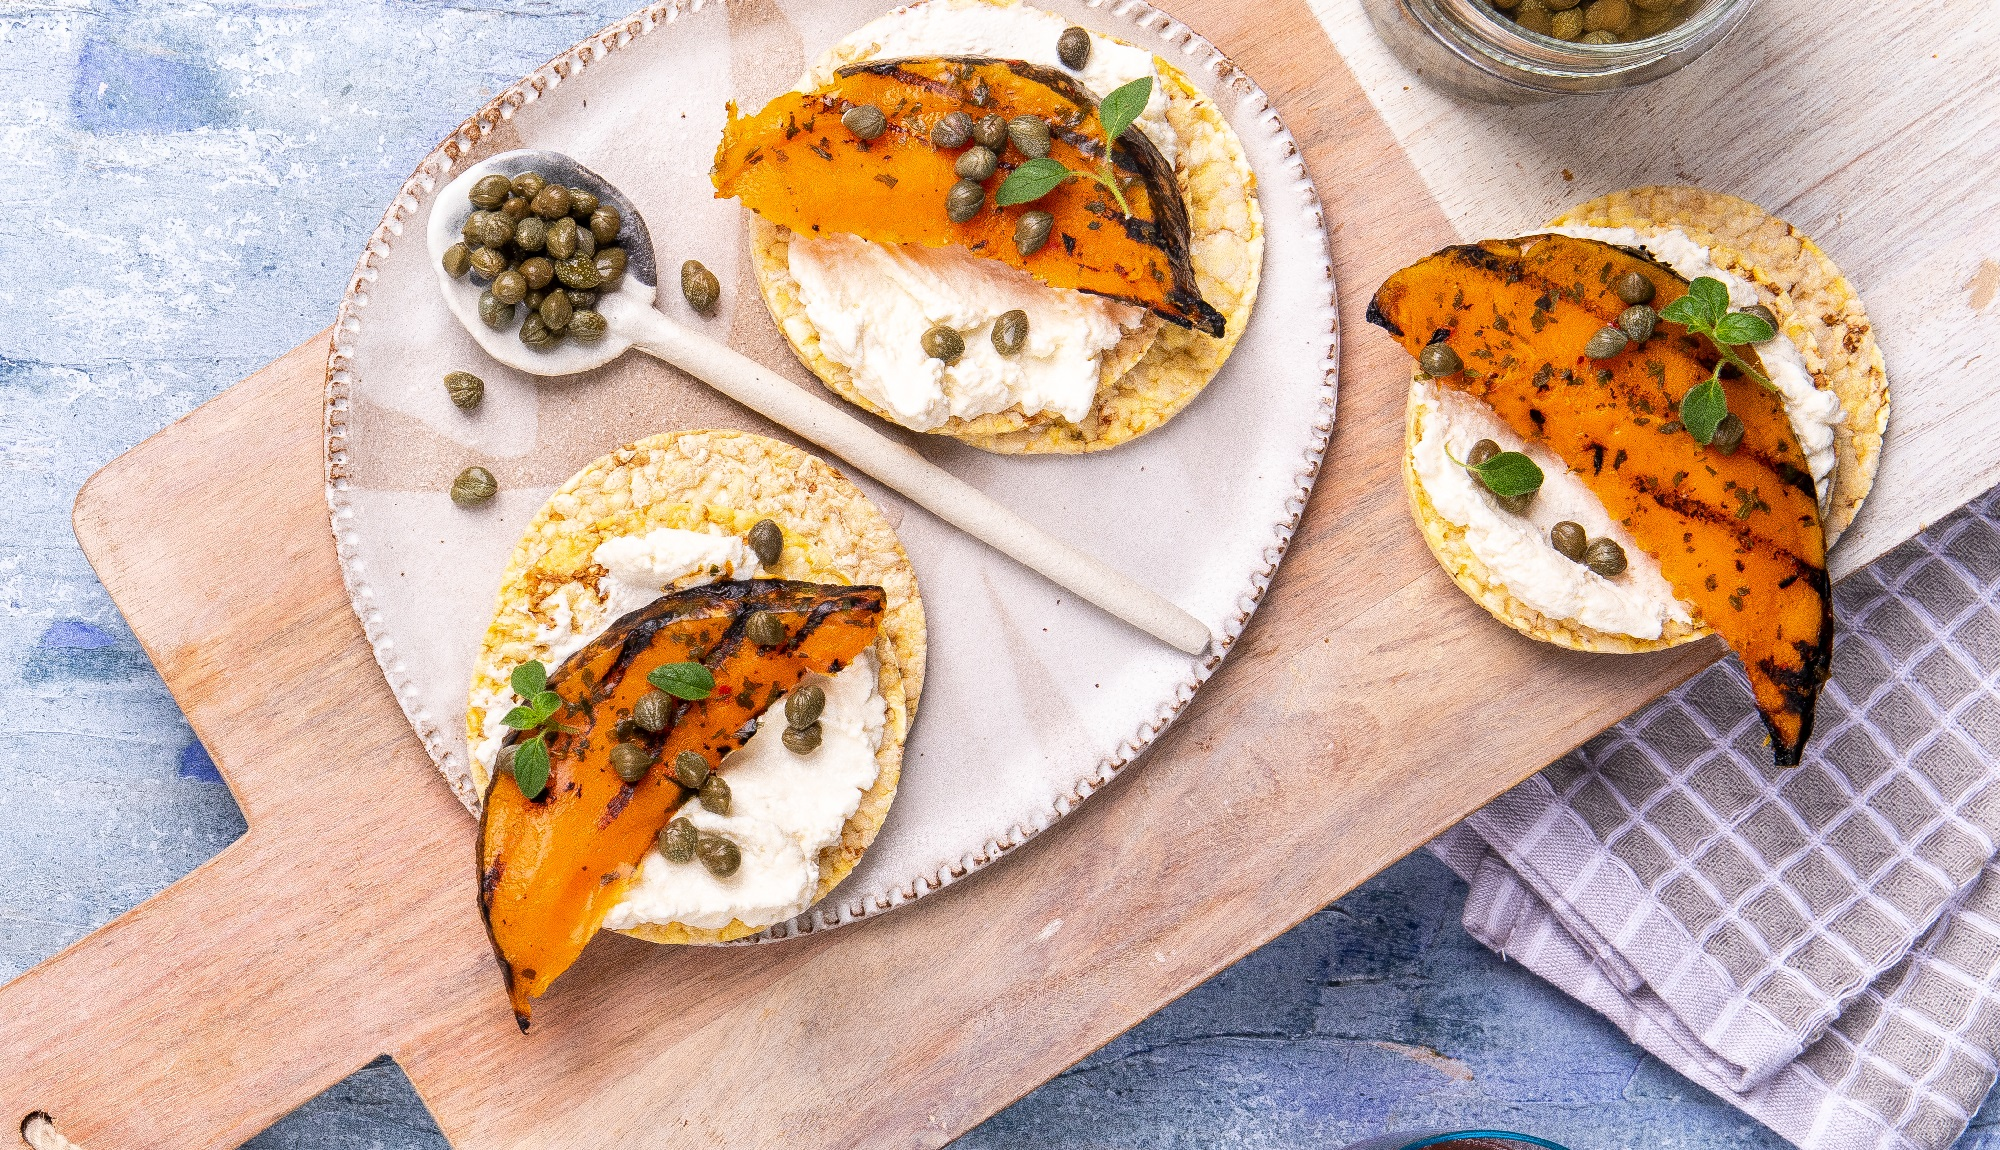 Ricotta, roast pumpkin & capers on Corn Thins slices for lunch